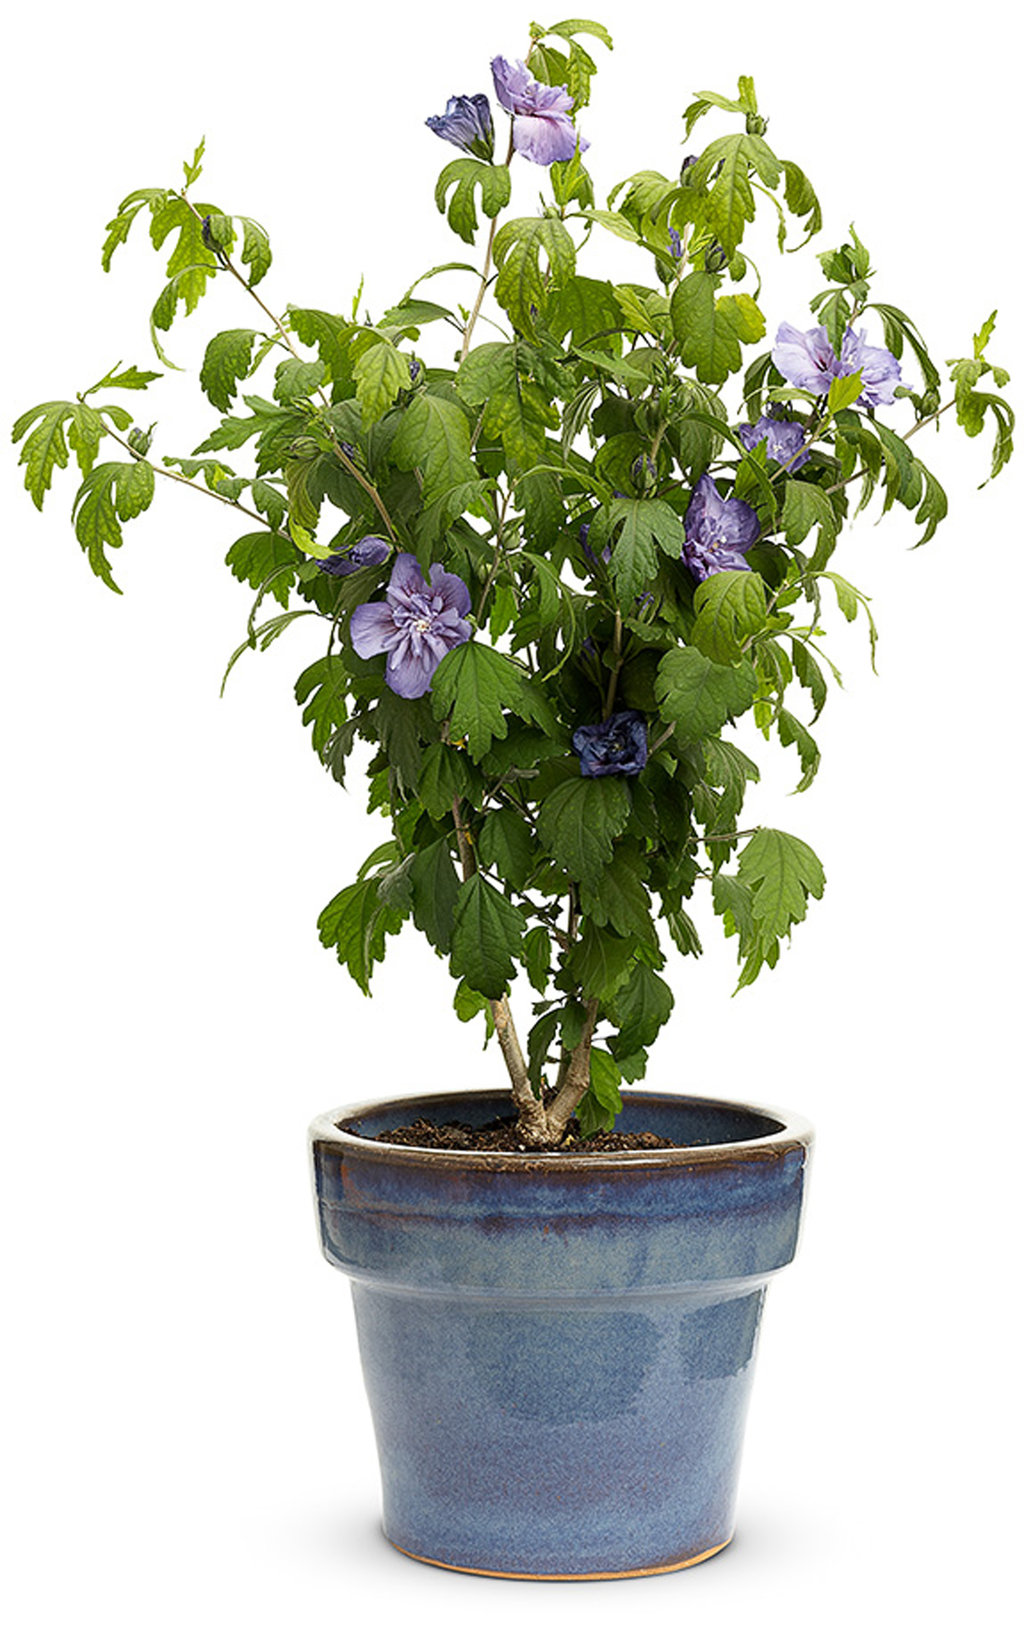 Blue Chiffon Rose Of Sharon Hibiscus Syriacus Proven Winners